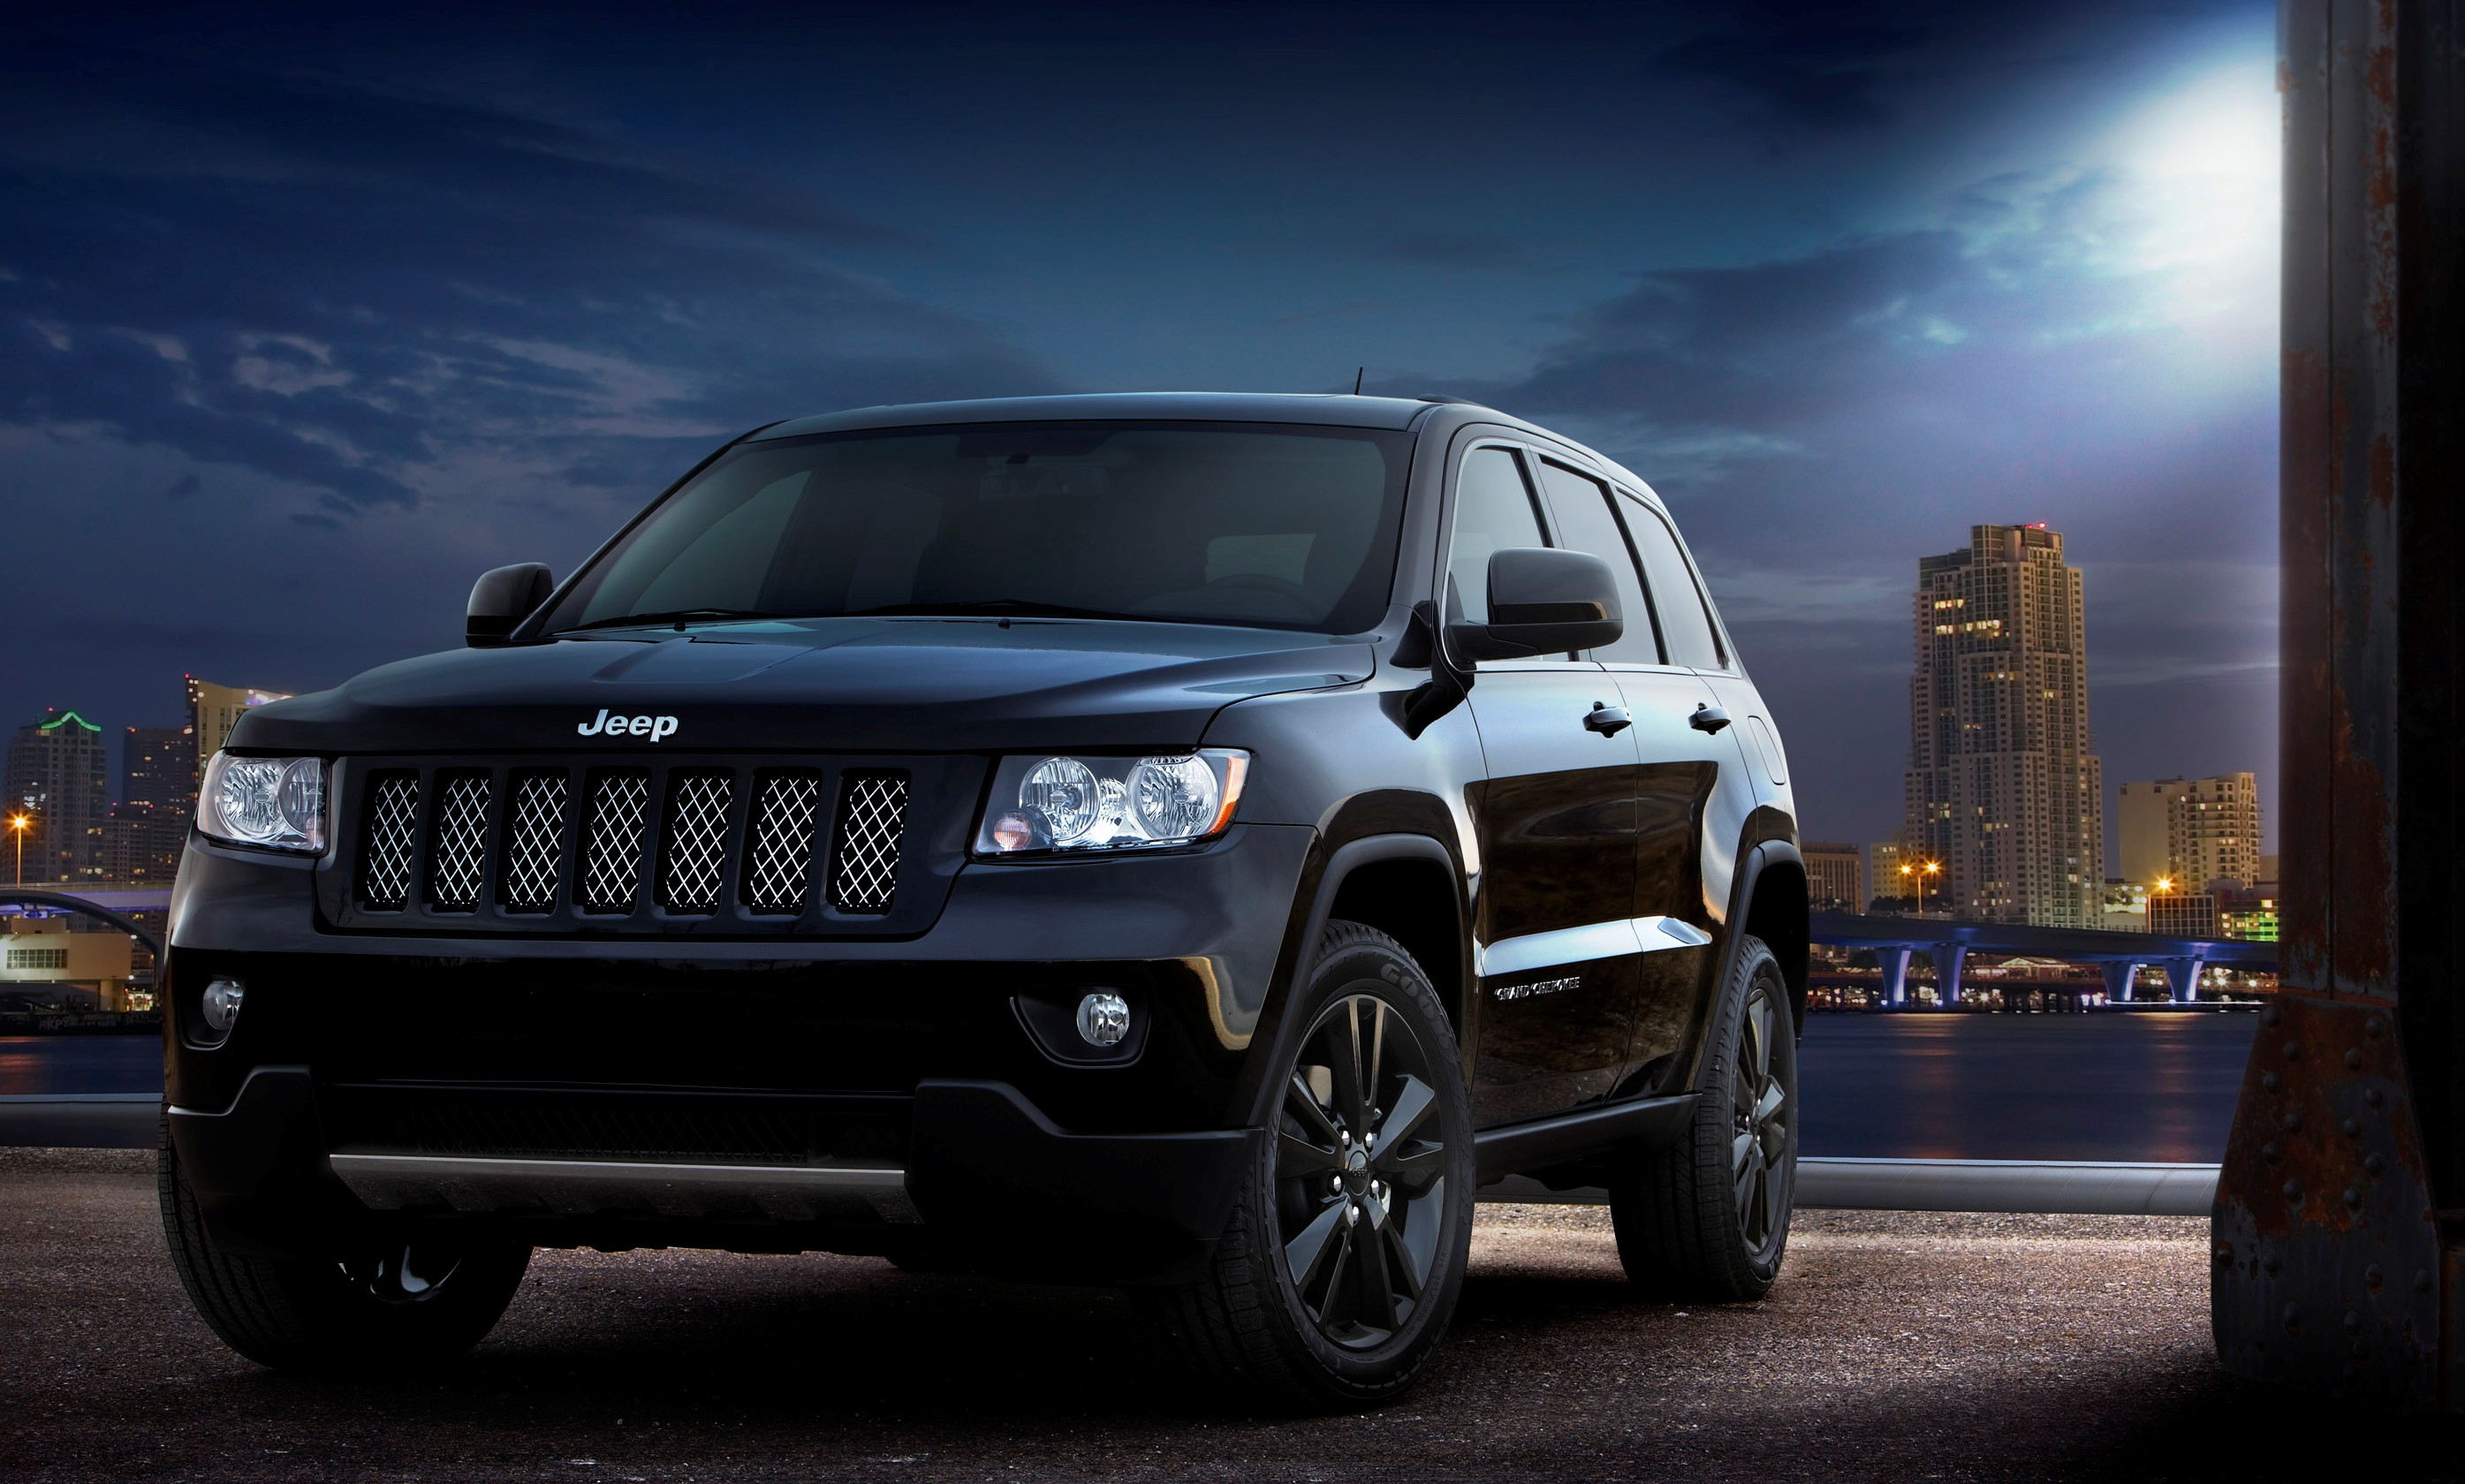 Jeep Cherokee Altitude >> Jeep Gets High, Releases Altitude Edition Grand Cherokee, Compass, Patriot